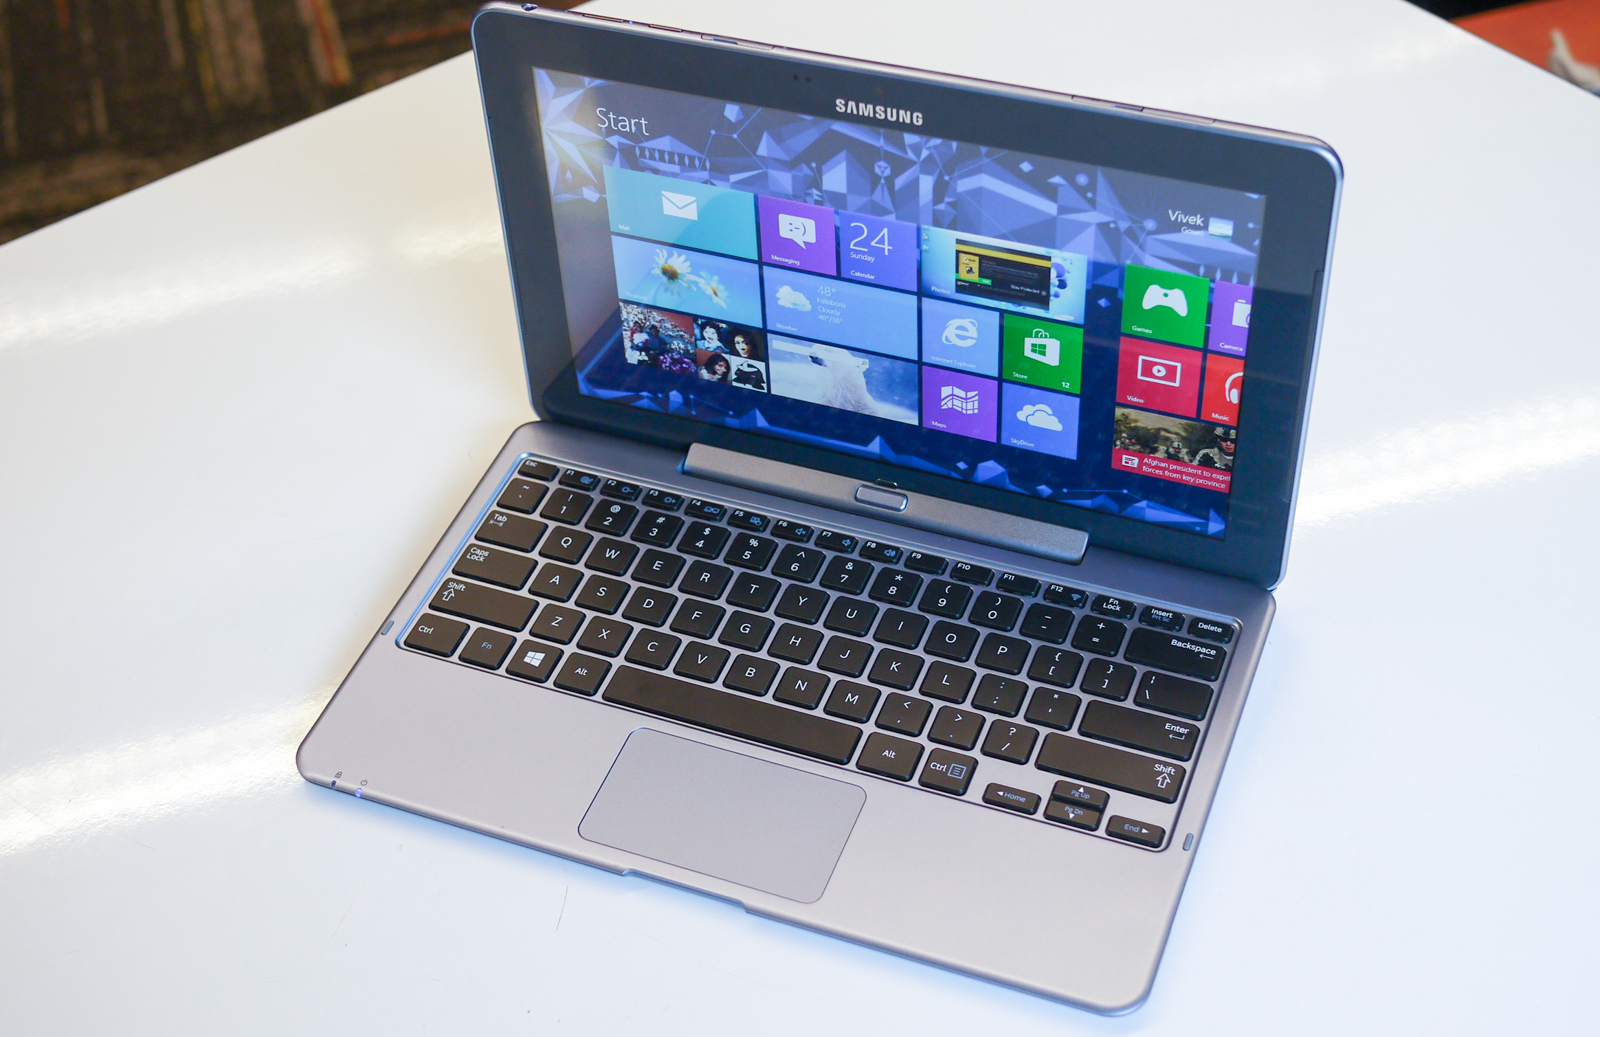 Samsung ATIV Smart PC Revisiting Clover Trail Convertibles